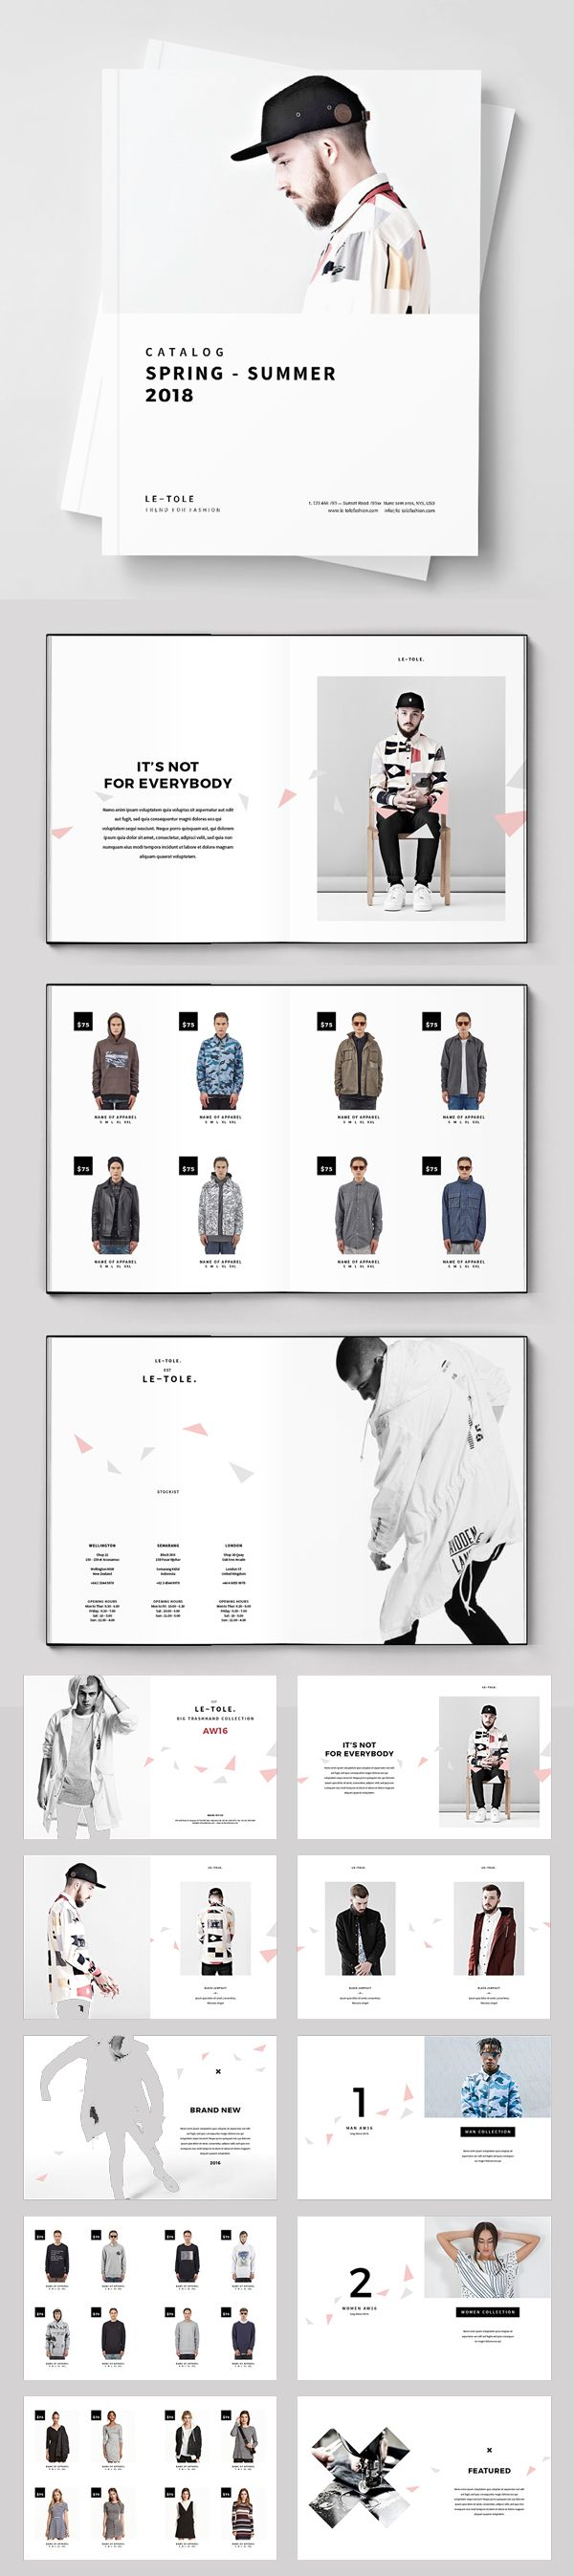 catalogues layouts